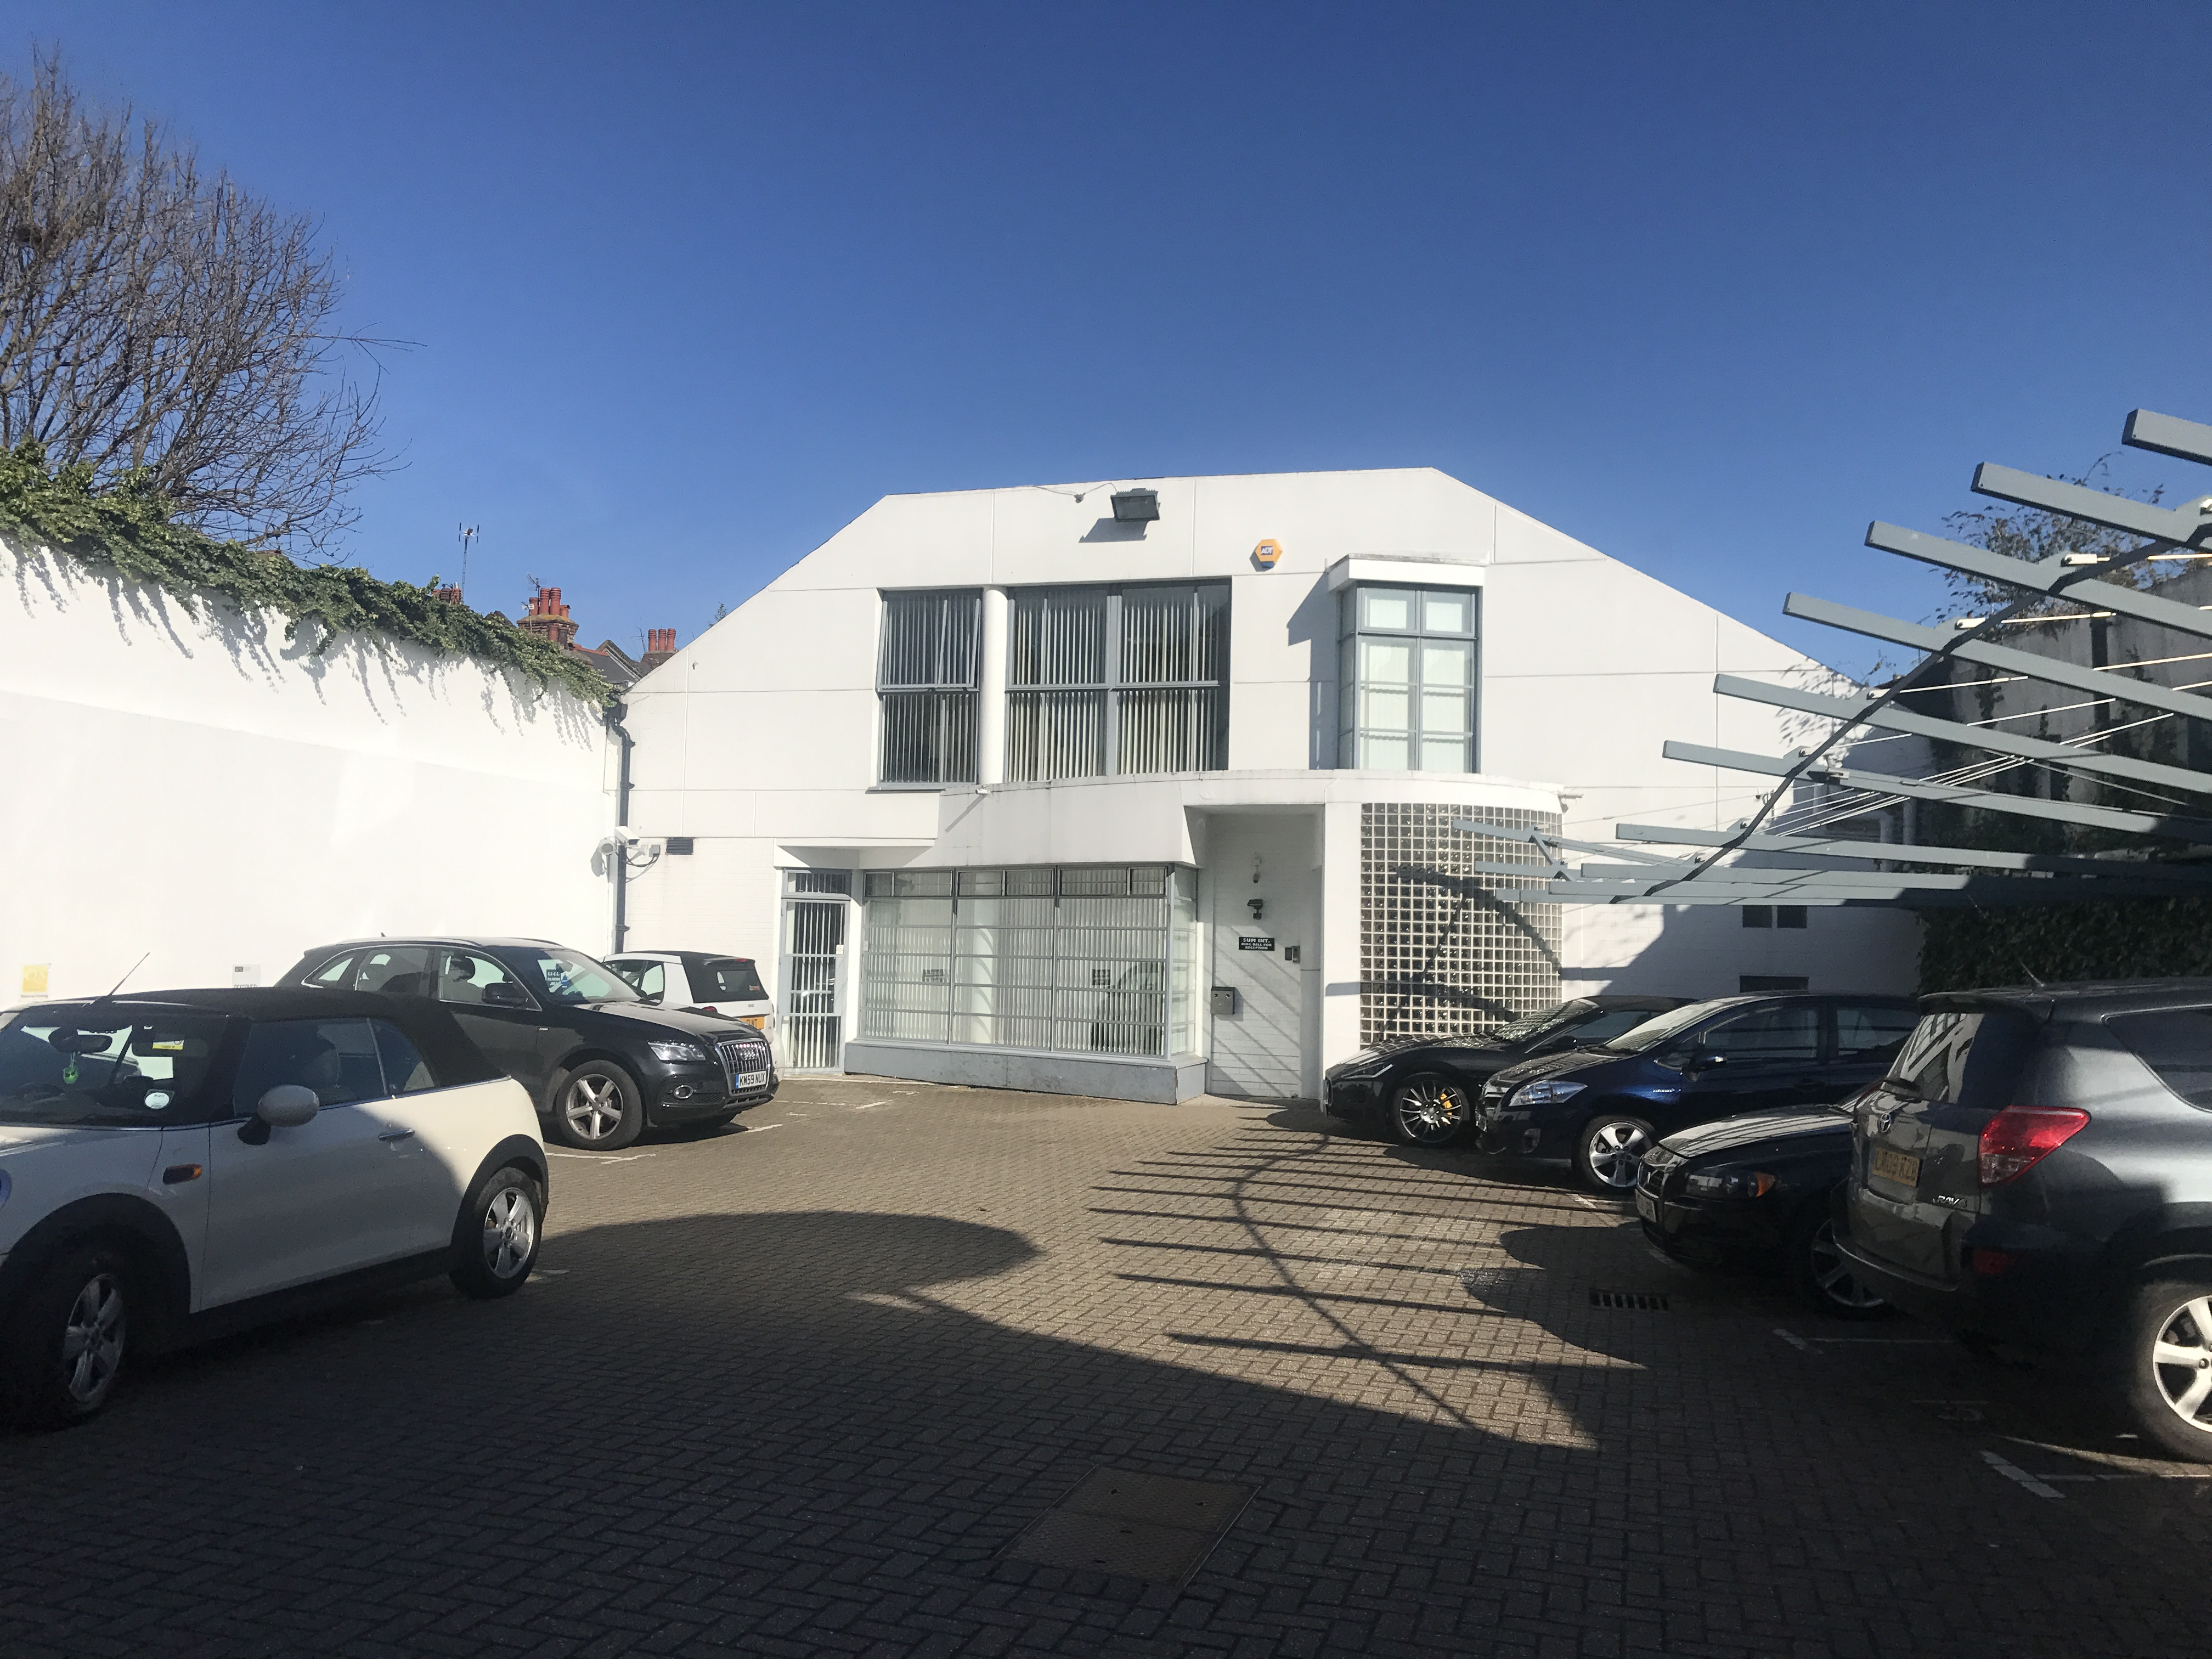 8 HEATHGATE BELSIZE PARK NW3 OFFICES *FOR SALE* 3,850 sq ft